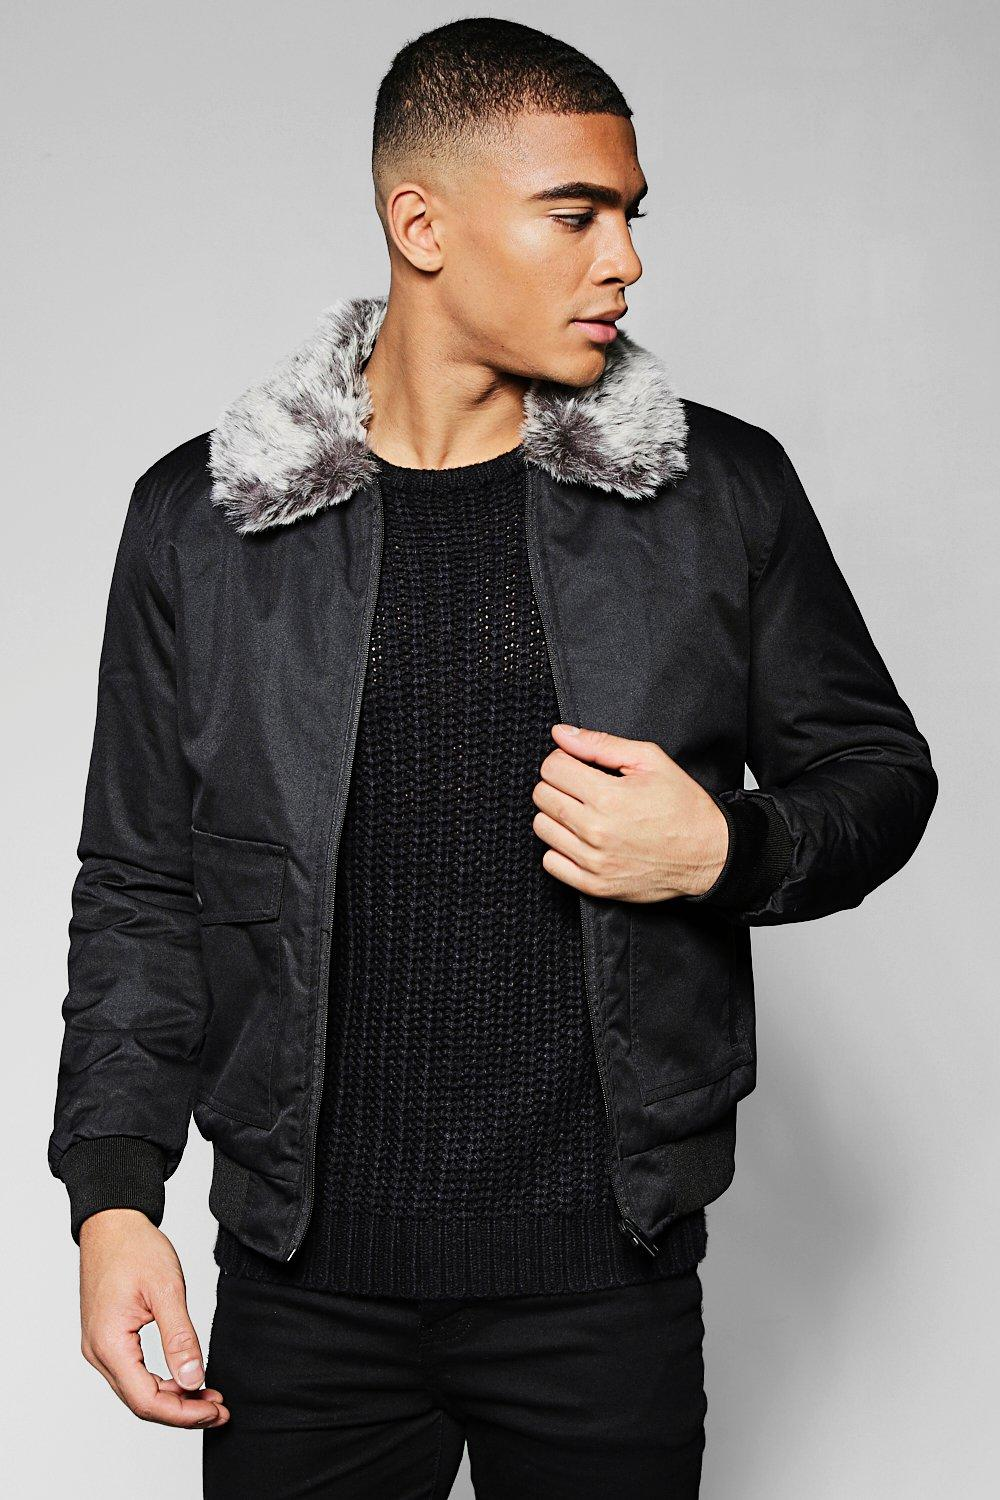 ae5547fa6 Bomber Jacket With Faux Fur Collar - boohooMAN